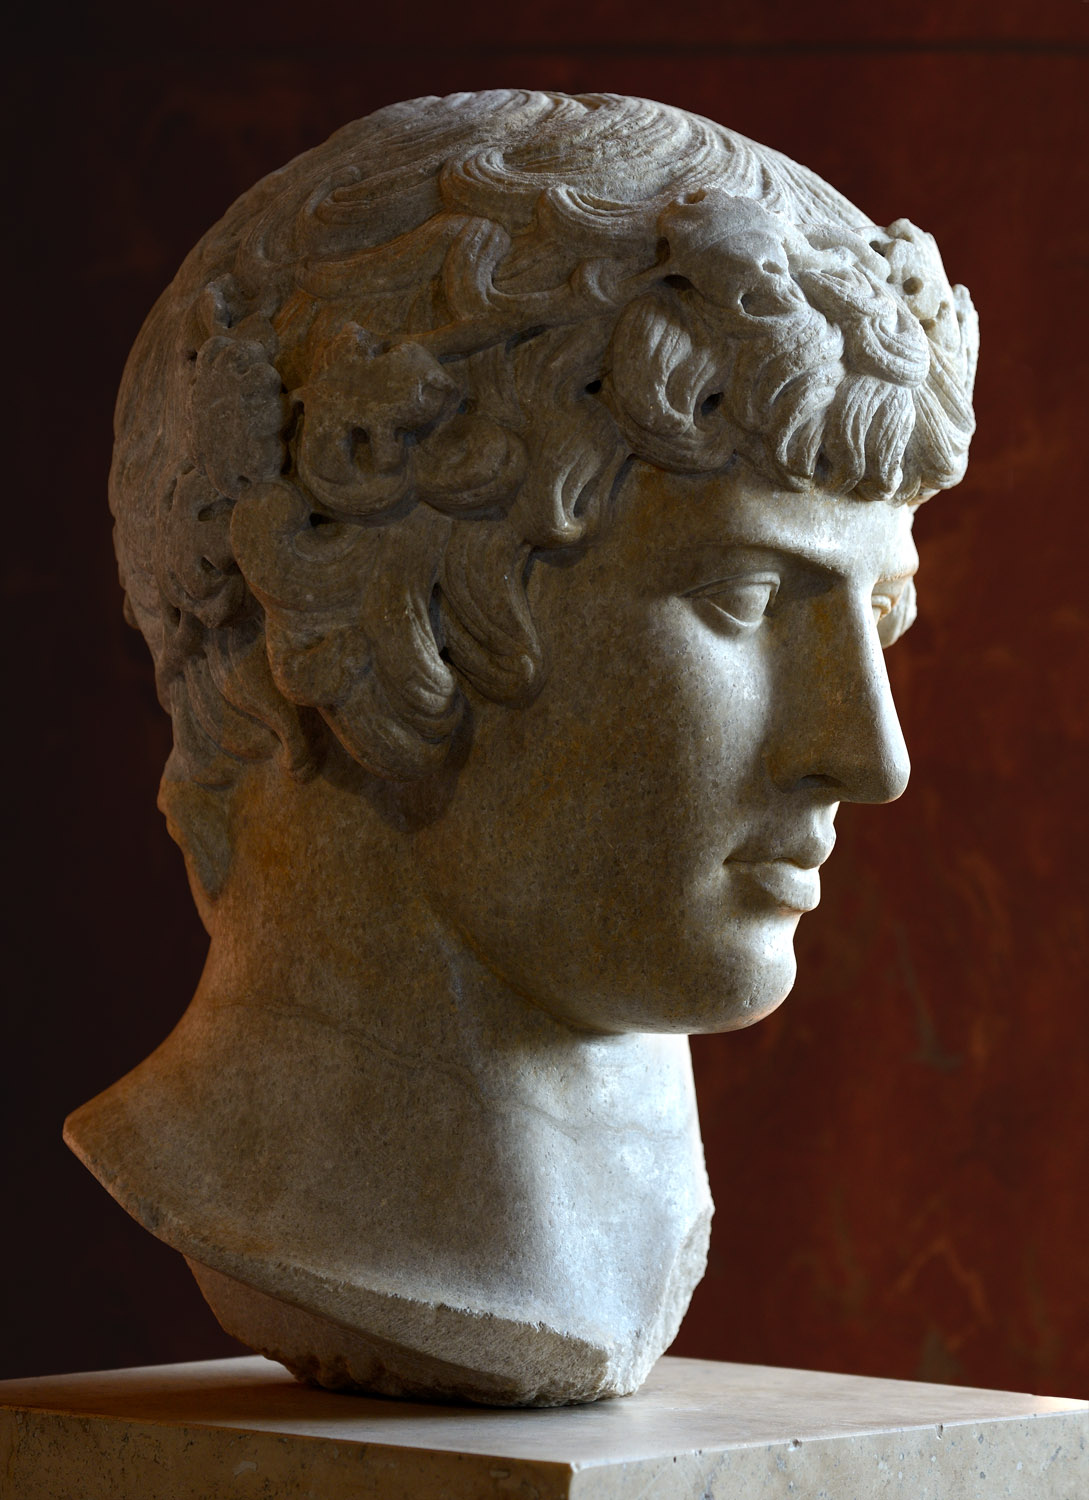 Antinous. Marble. Ca. 130 CE. Inv. No. MR 414 - N 1299 / Ma 238 Paris, Louvre Museum